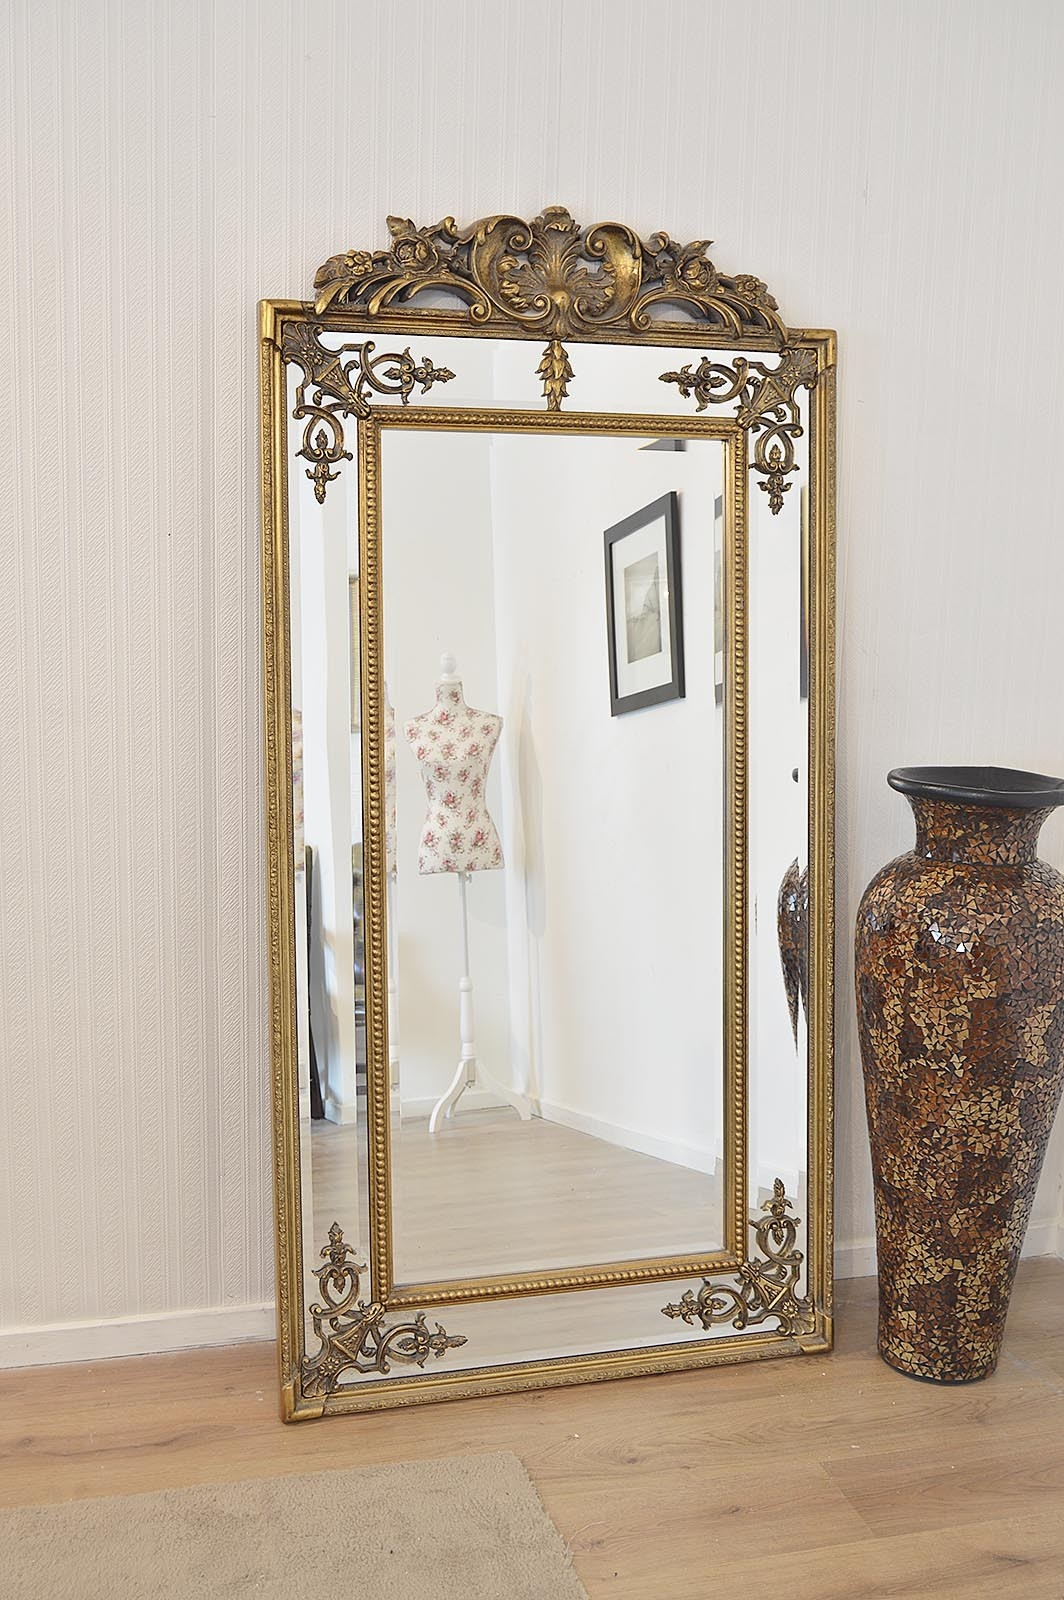 Large Gold Ornate Antique Design Wall Mounted Mirror New 6ft X 3ft For Gold Ornate Mirror (Image 6 of 15)